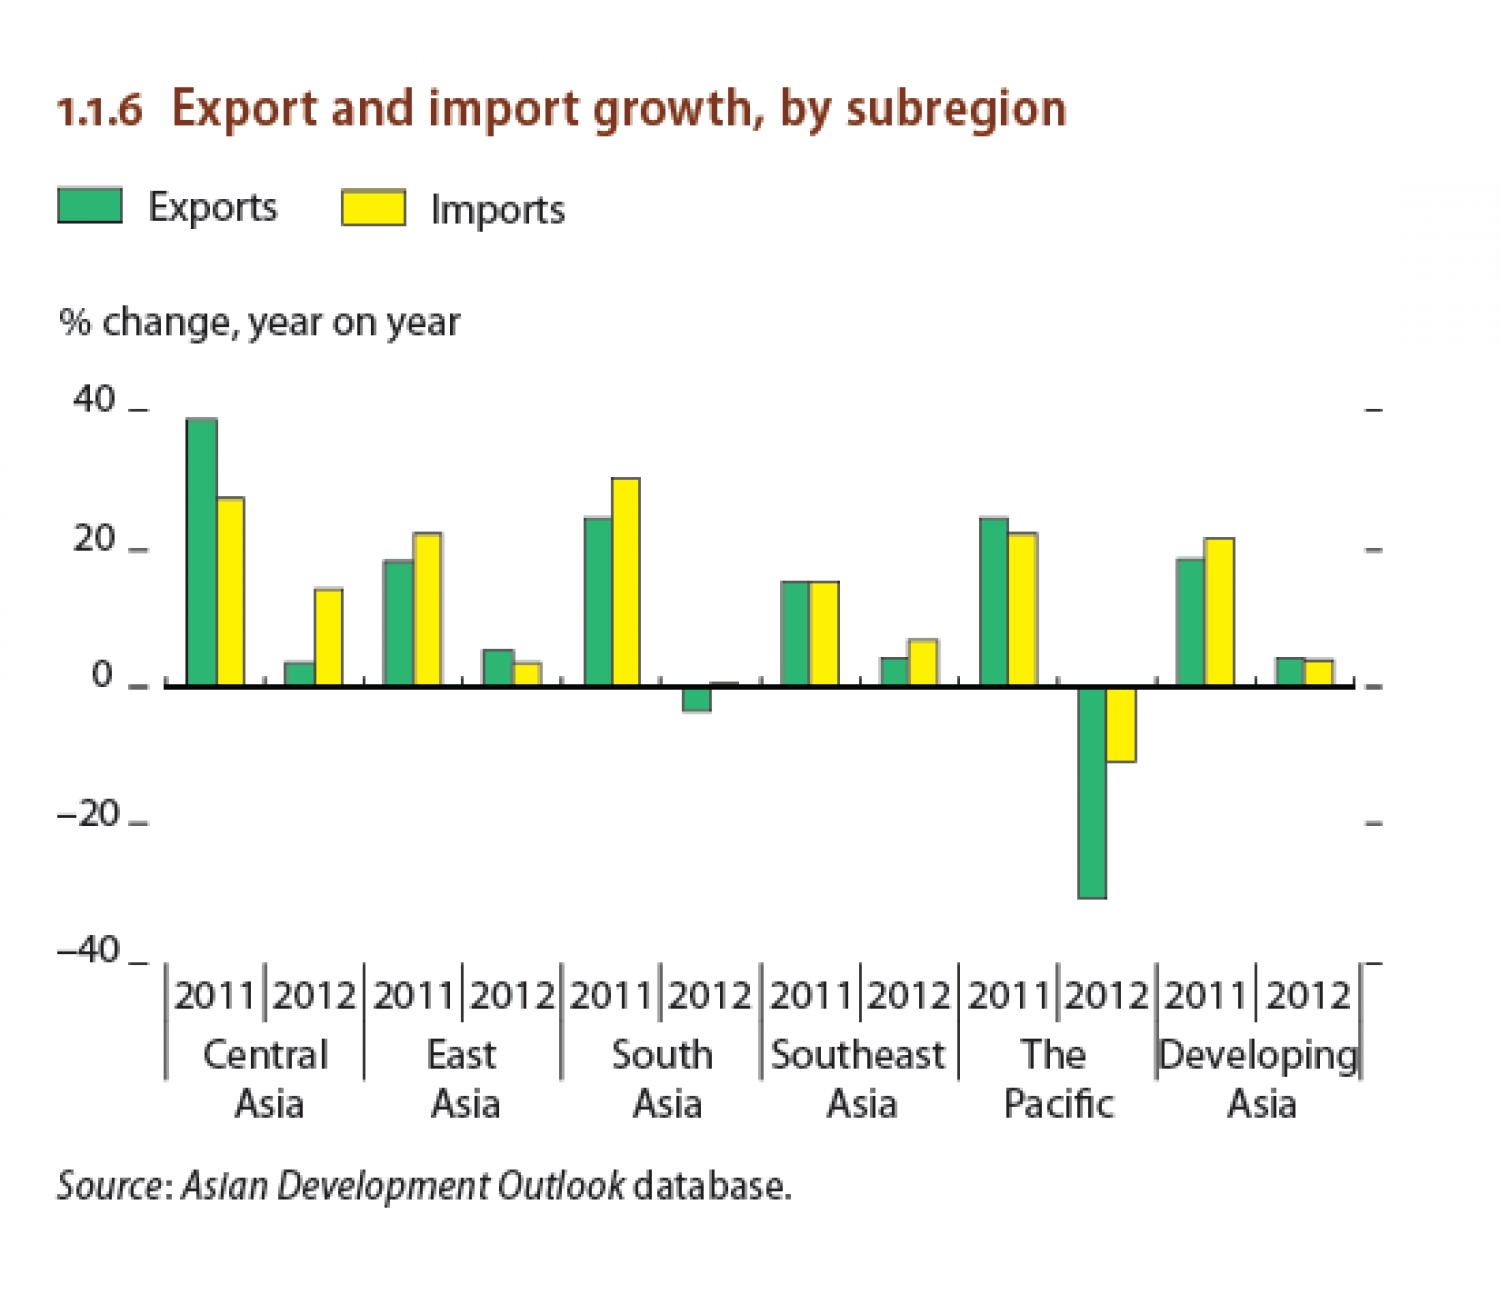 Export and import growth , by subregion Infographic